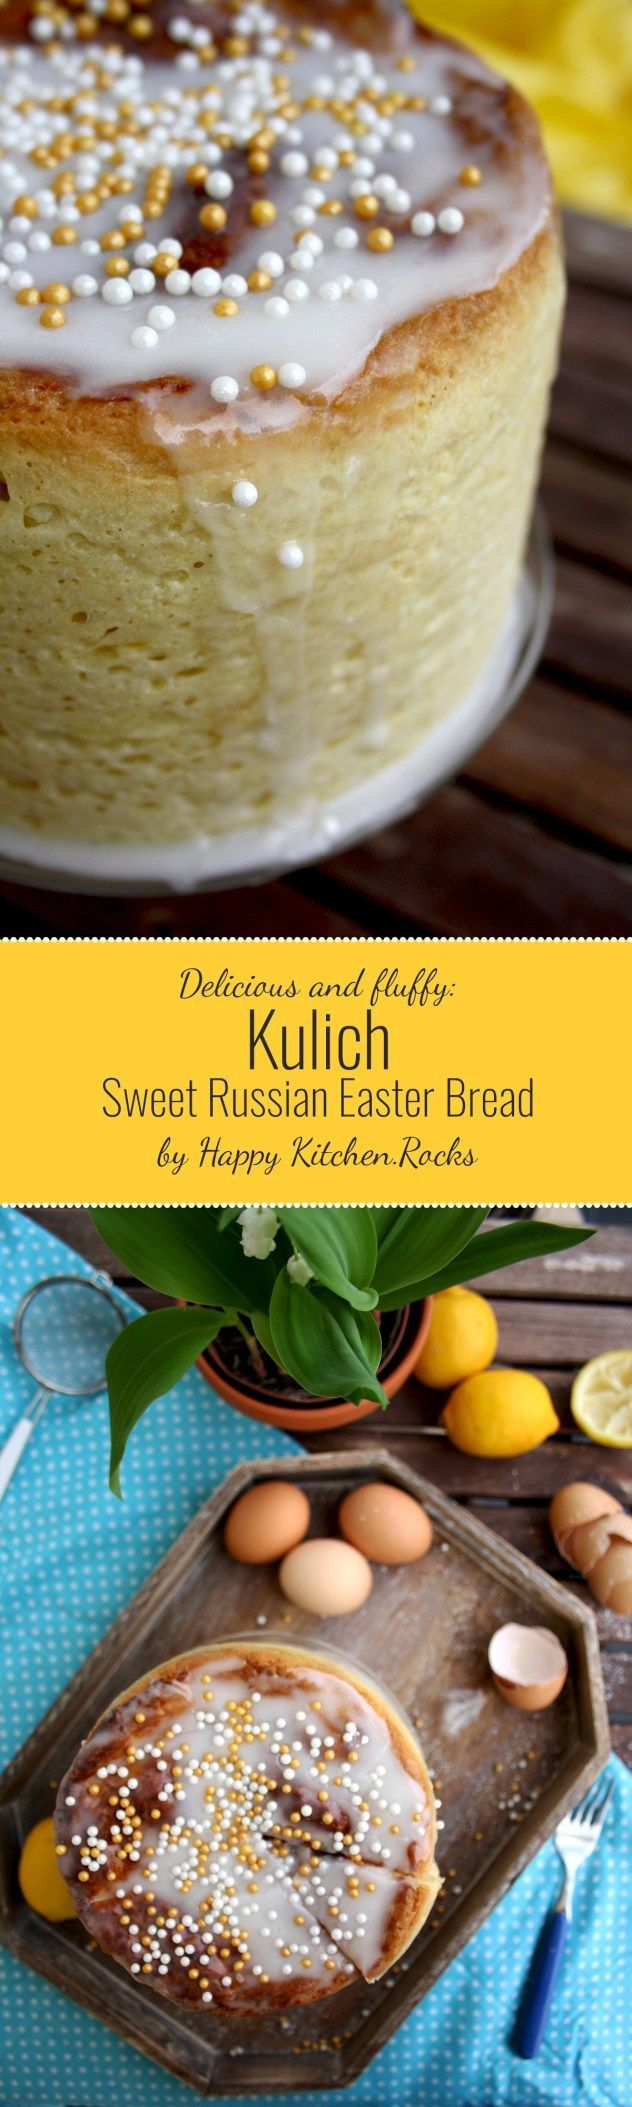 Russian Kulich (sweet Easter bread) is fluffy, fragrant, soft and aromatic. This recipe is healthier and less time-consuming than the original. This kulich doesn't go stale for more than 10 days! #easter #easterrecipes #russianrecipe #bread #sweetbread #breadrecipe #baking #homemade #homemadebread